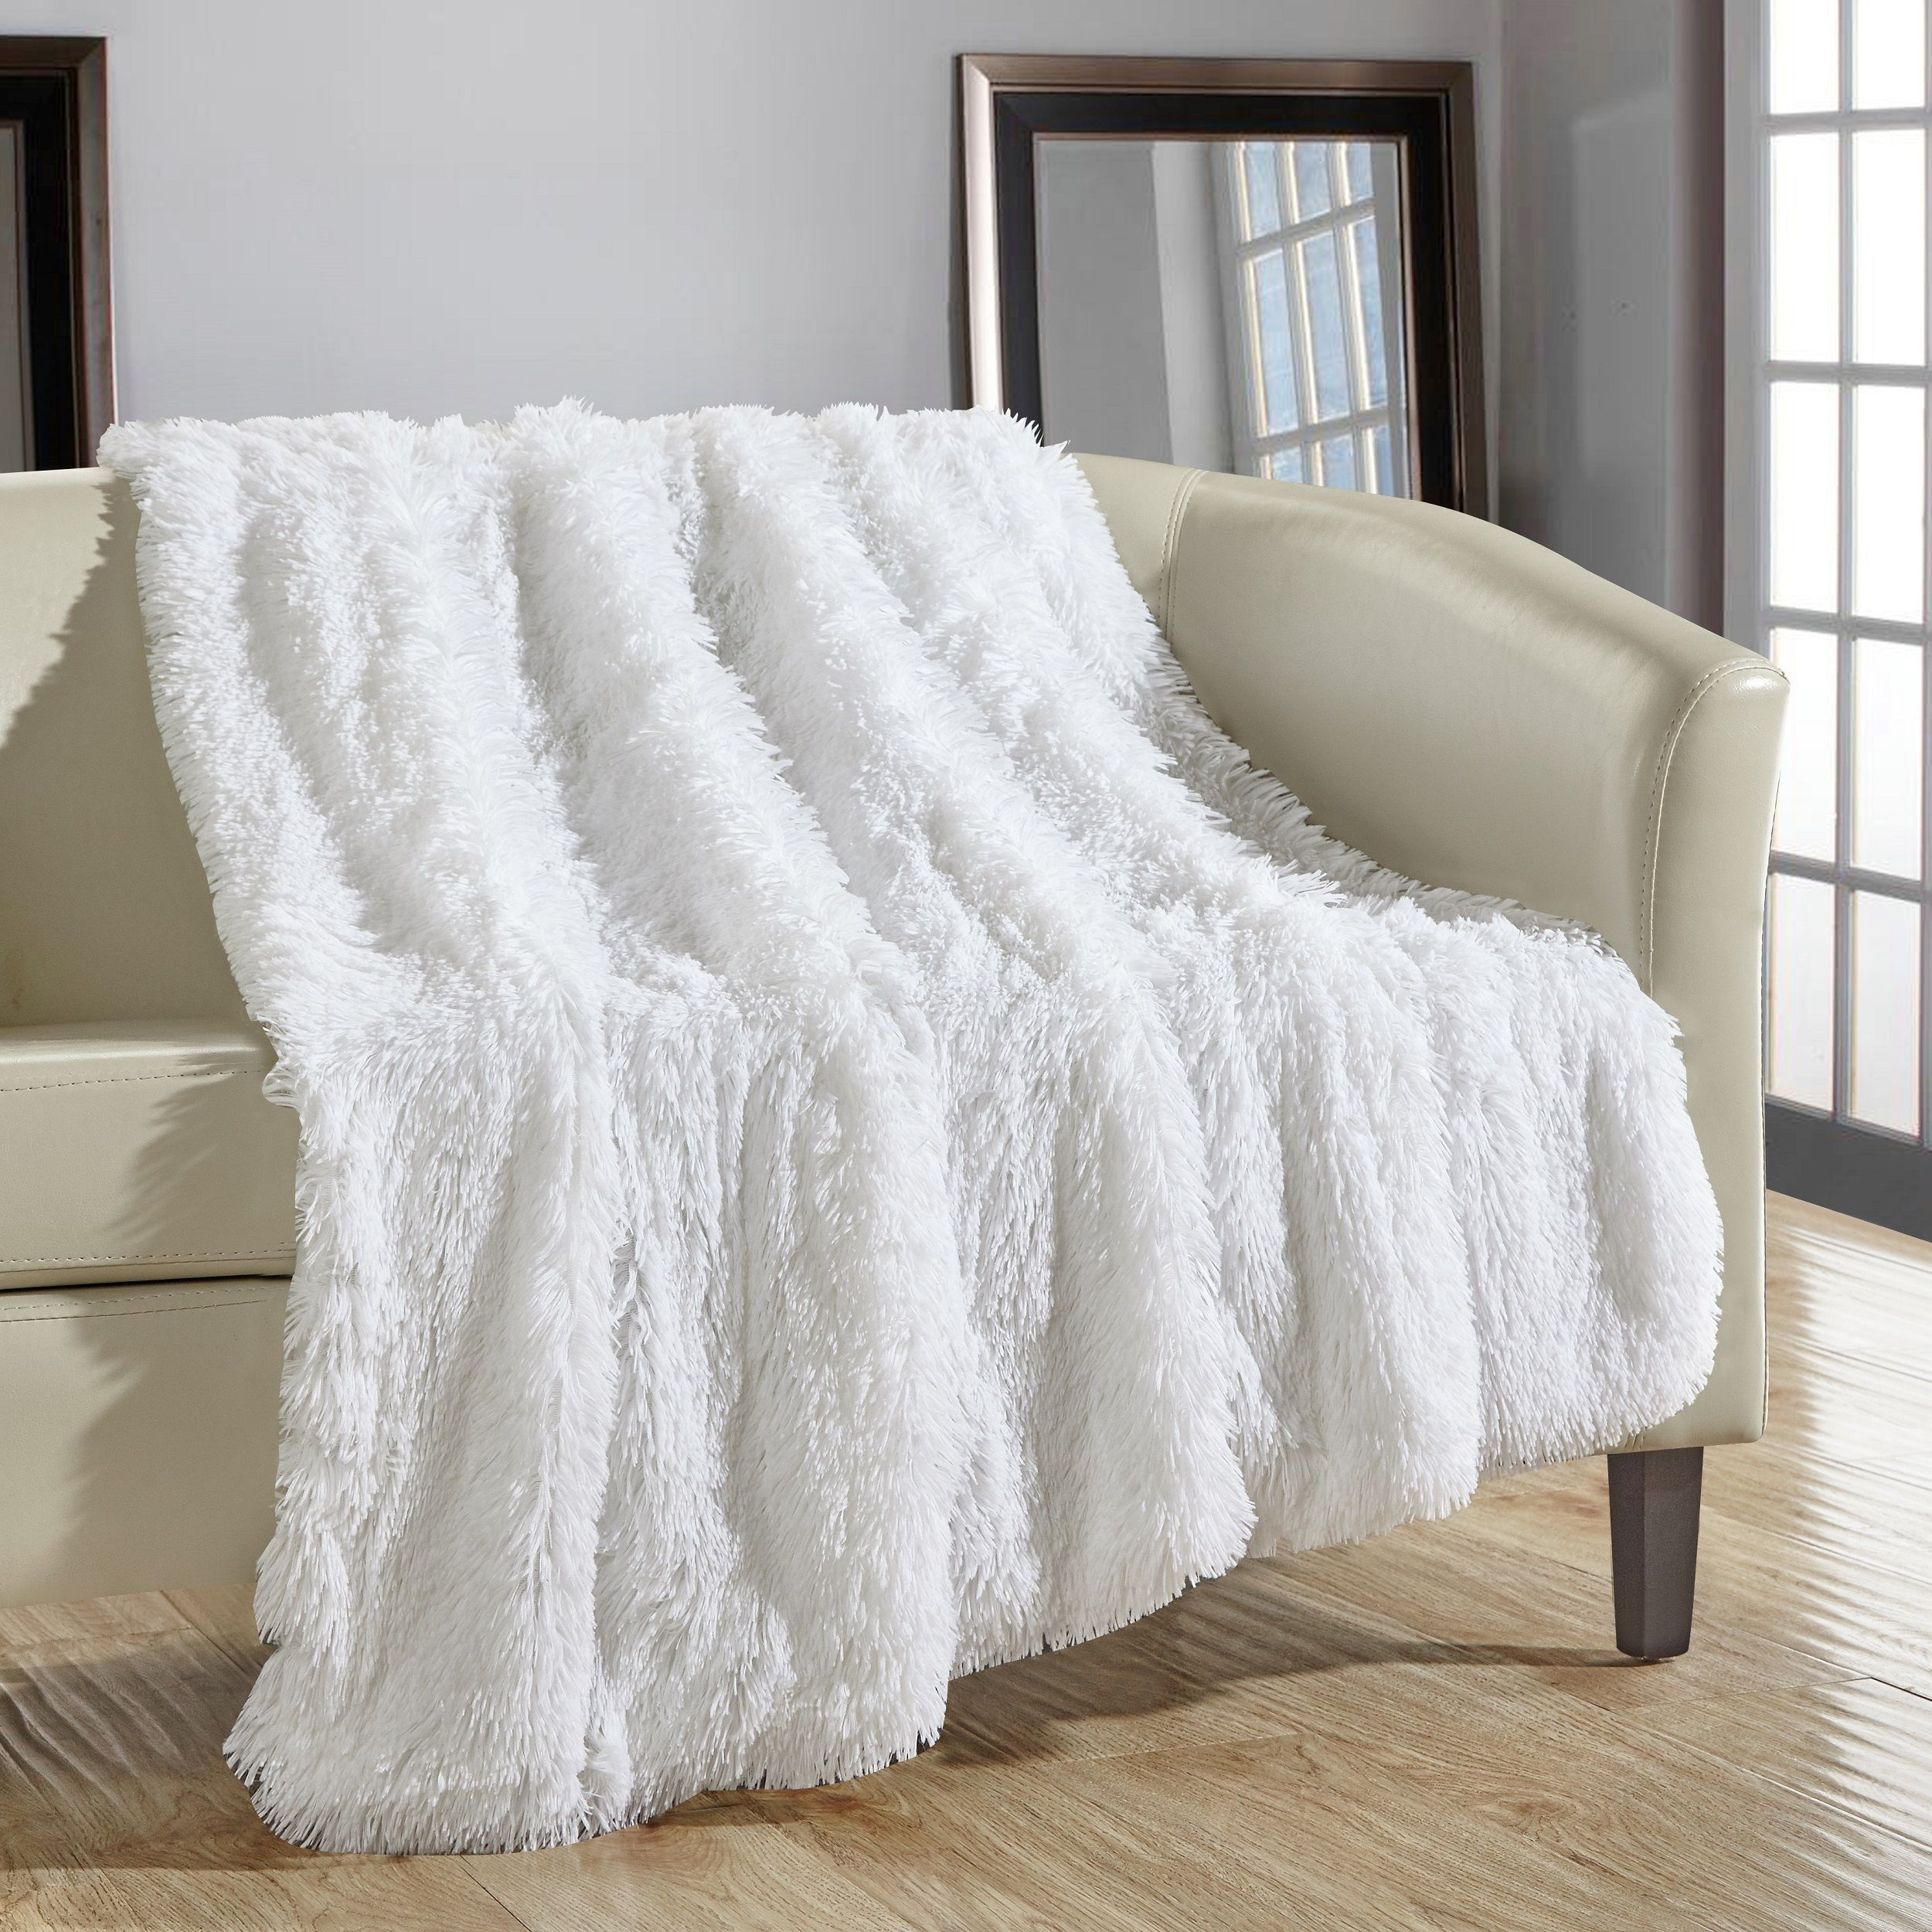 Overstock Com Online Shopping Bedding Furniture Electronics Jewelry Clothing More White Throw Blanket Decorative Throws Blanket Plush Throw Blankets